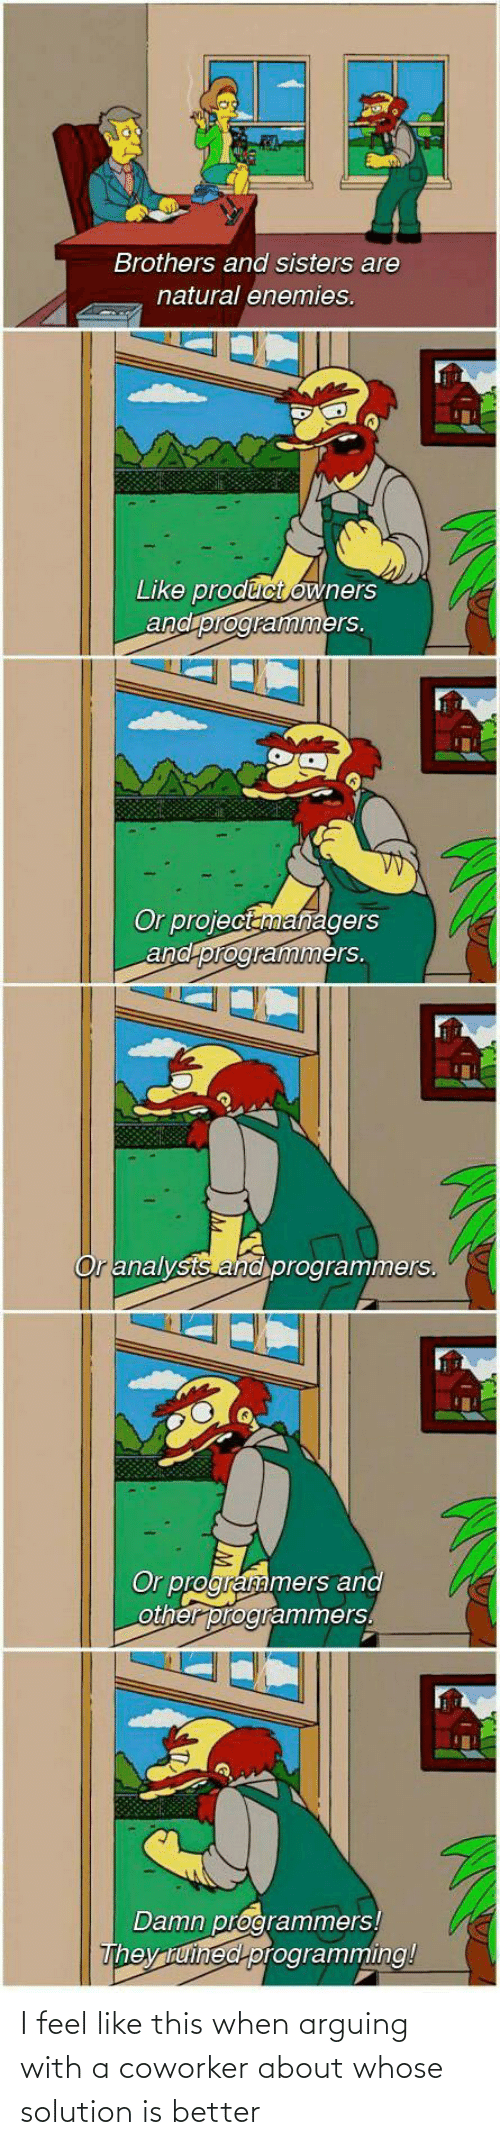 feel: Brothers and sisters are  natural enemies.  Like product owners  and programmers.  Or projectanmanagers  and programmers.  Or analysts and programmers.  Or programmers and  other programmers.  Damn programmers!  They tuined programming! I feel like this when arguing with a coworker about whose solution is better